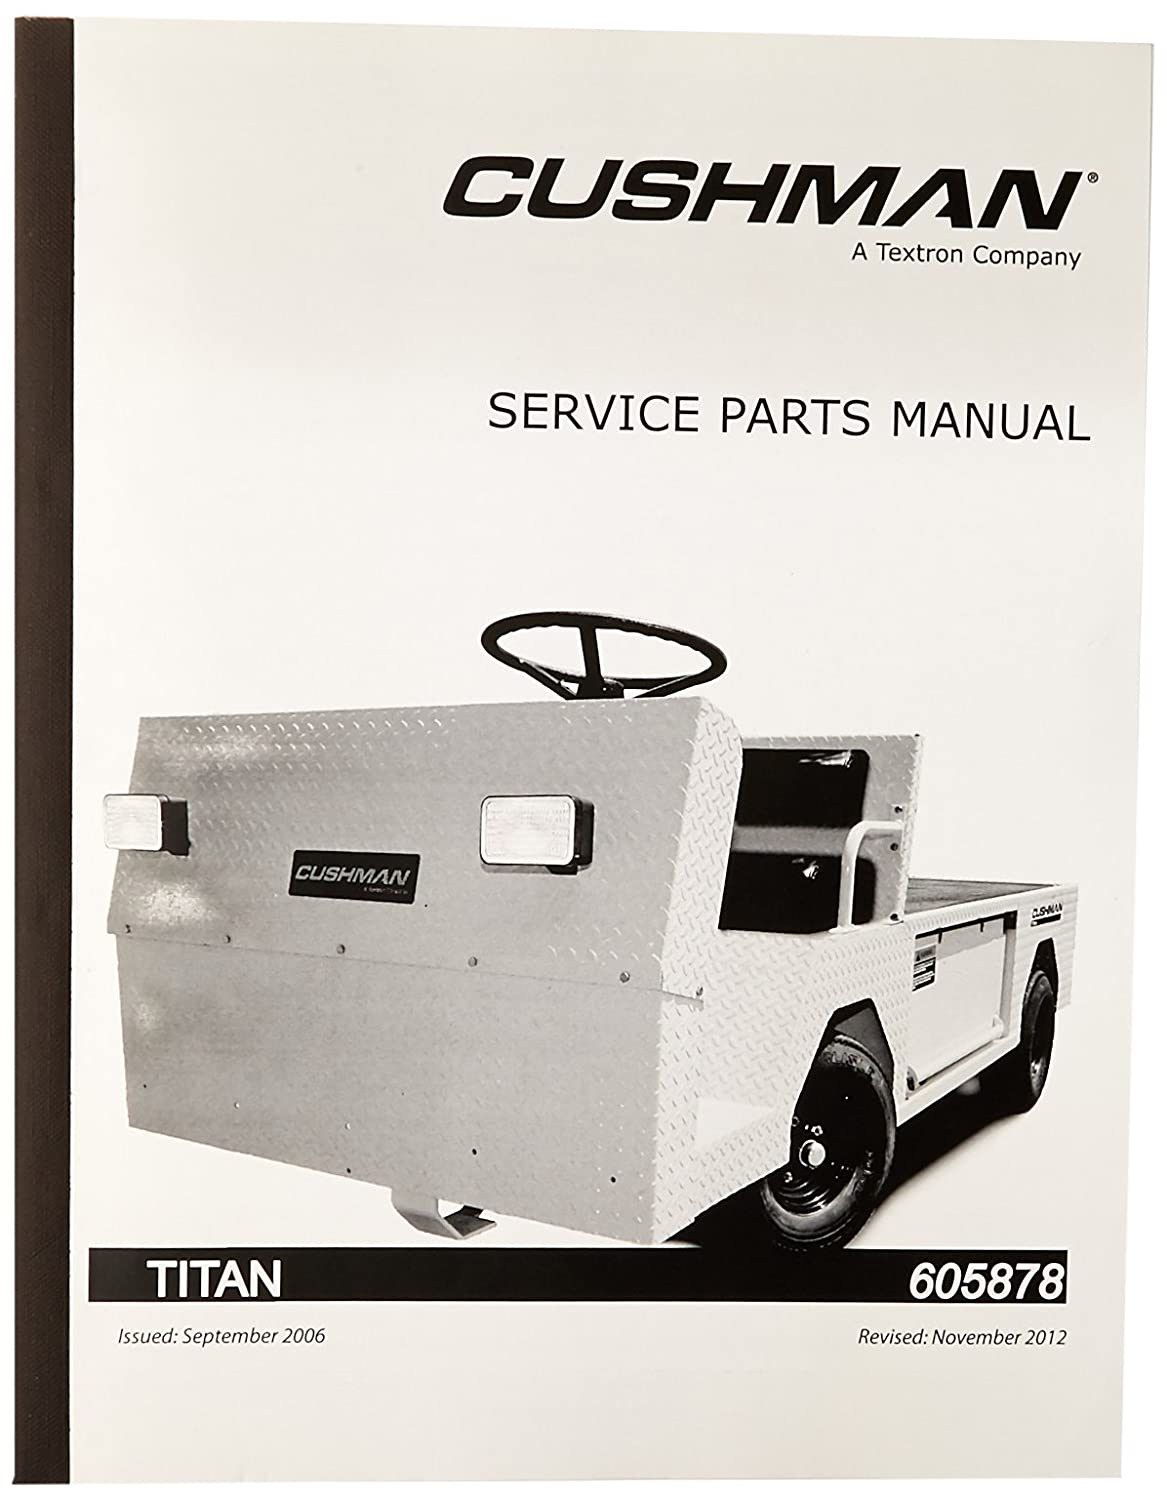 amazon com ezgo 605878 2005 service parts manual for cushman titan